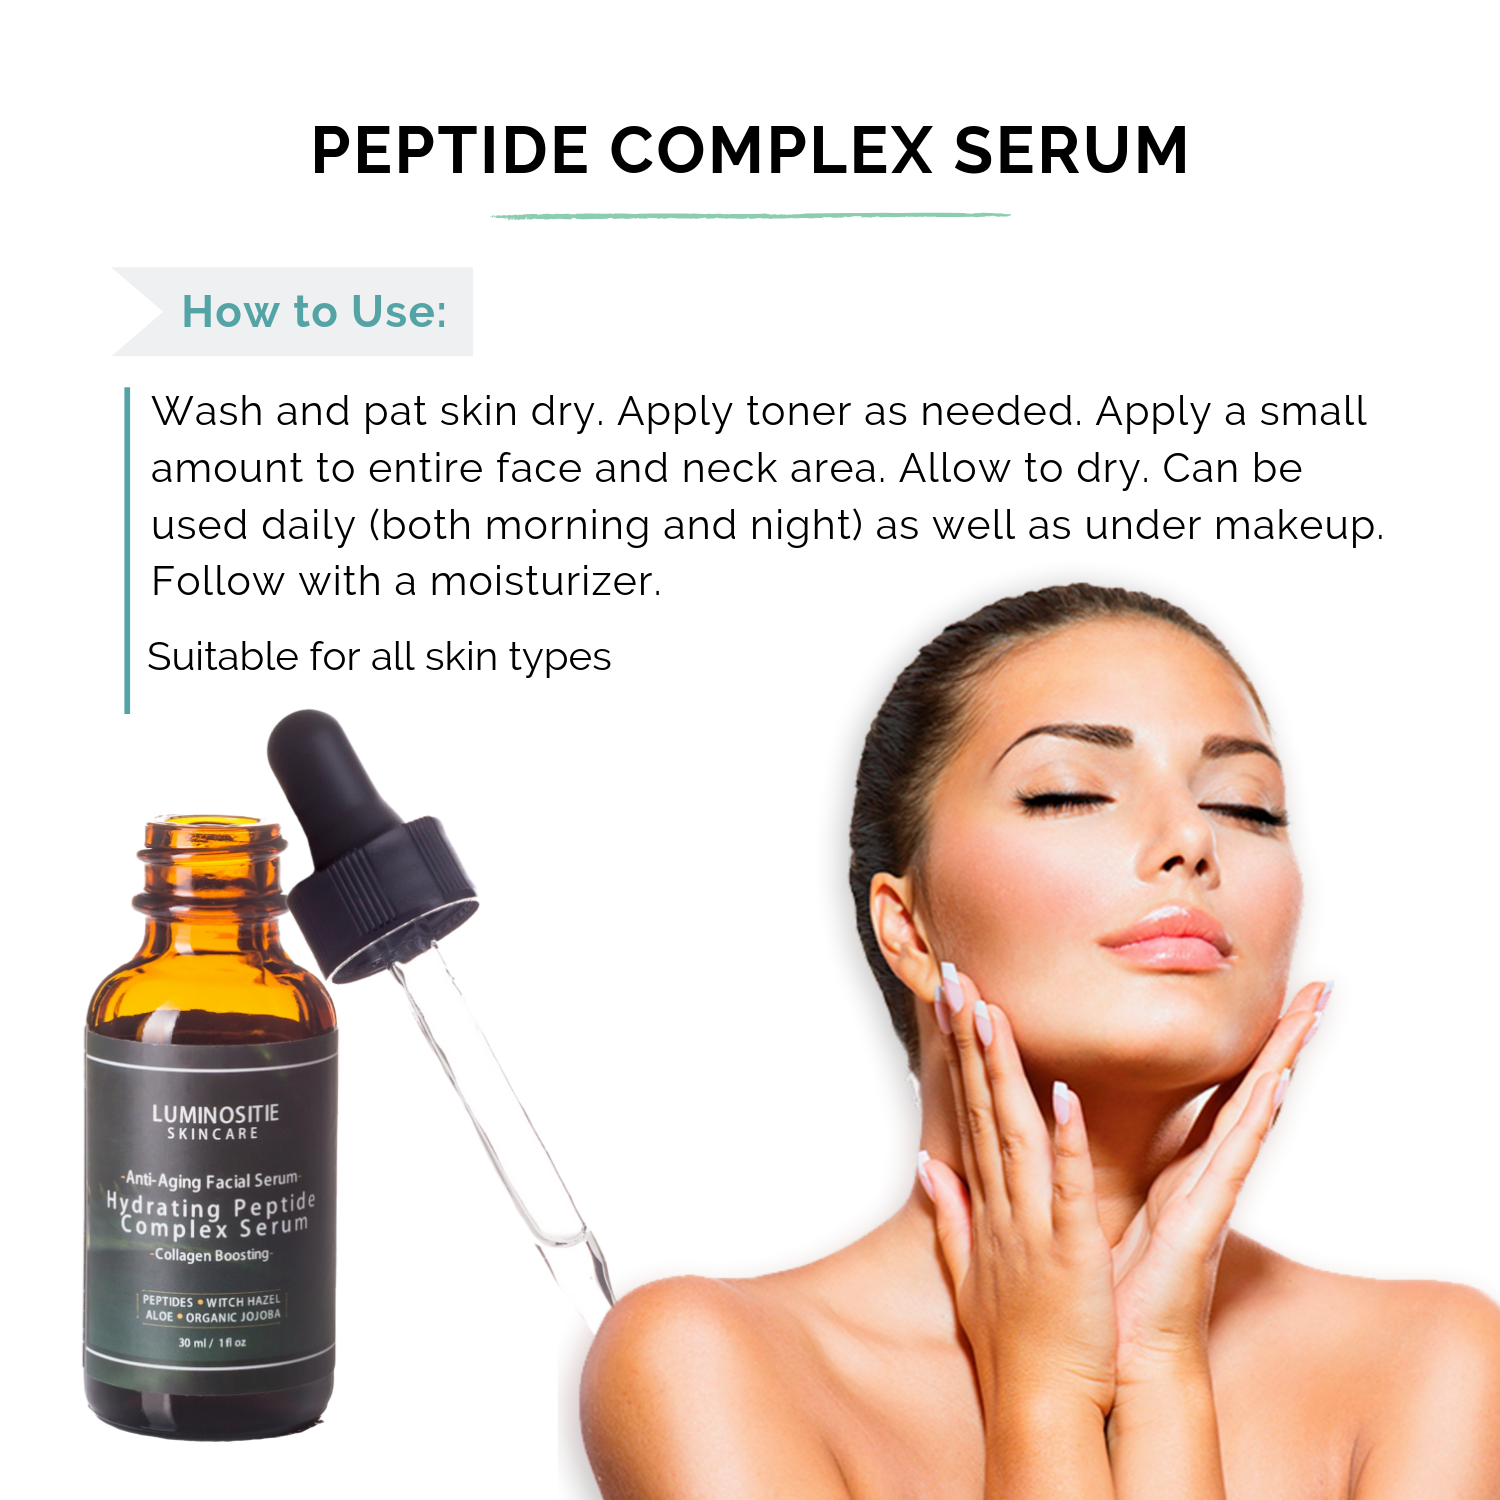 Hydrating Peptide Complex Serum - Luminositie